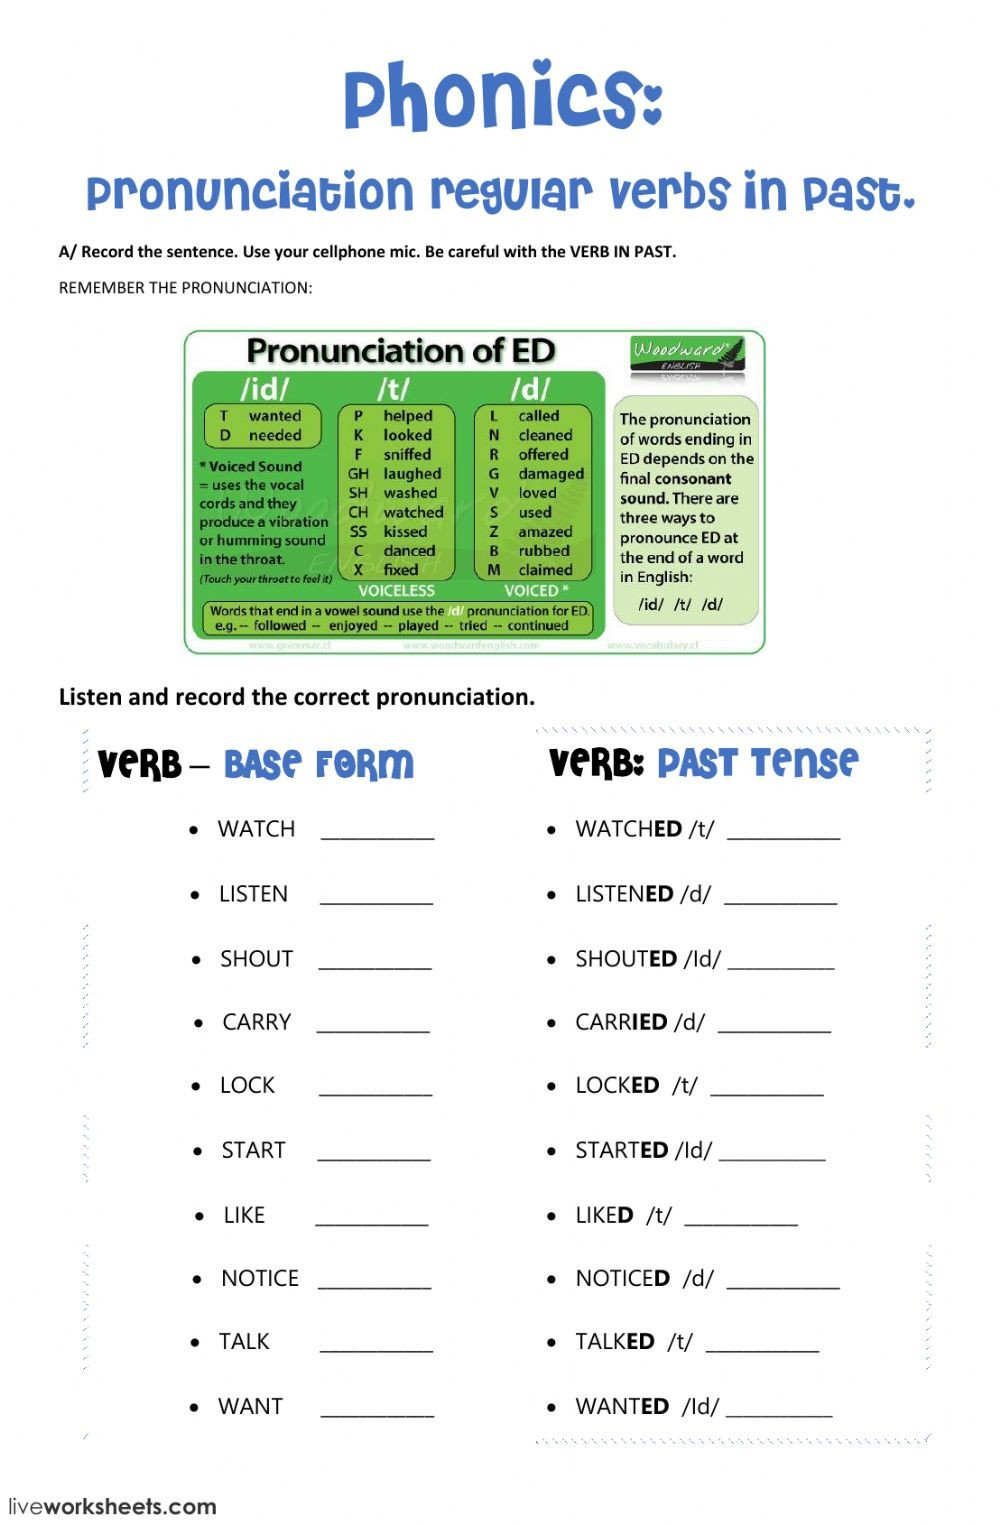 Pronunciation regular verbs in past ed tz9839iz